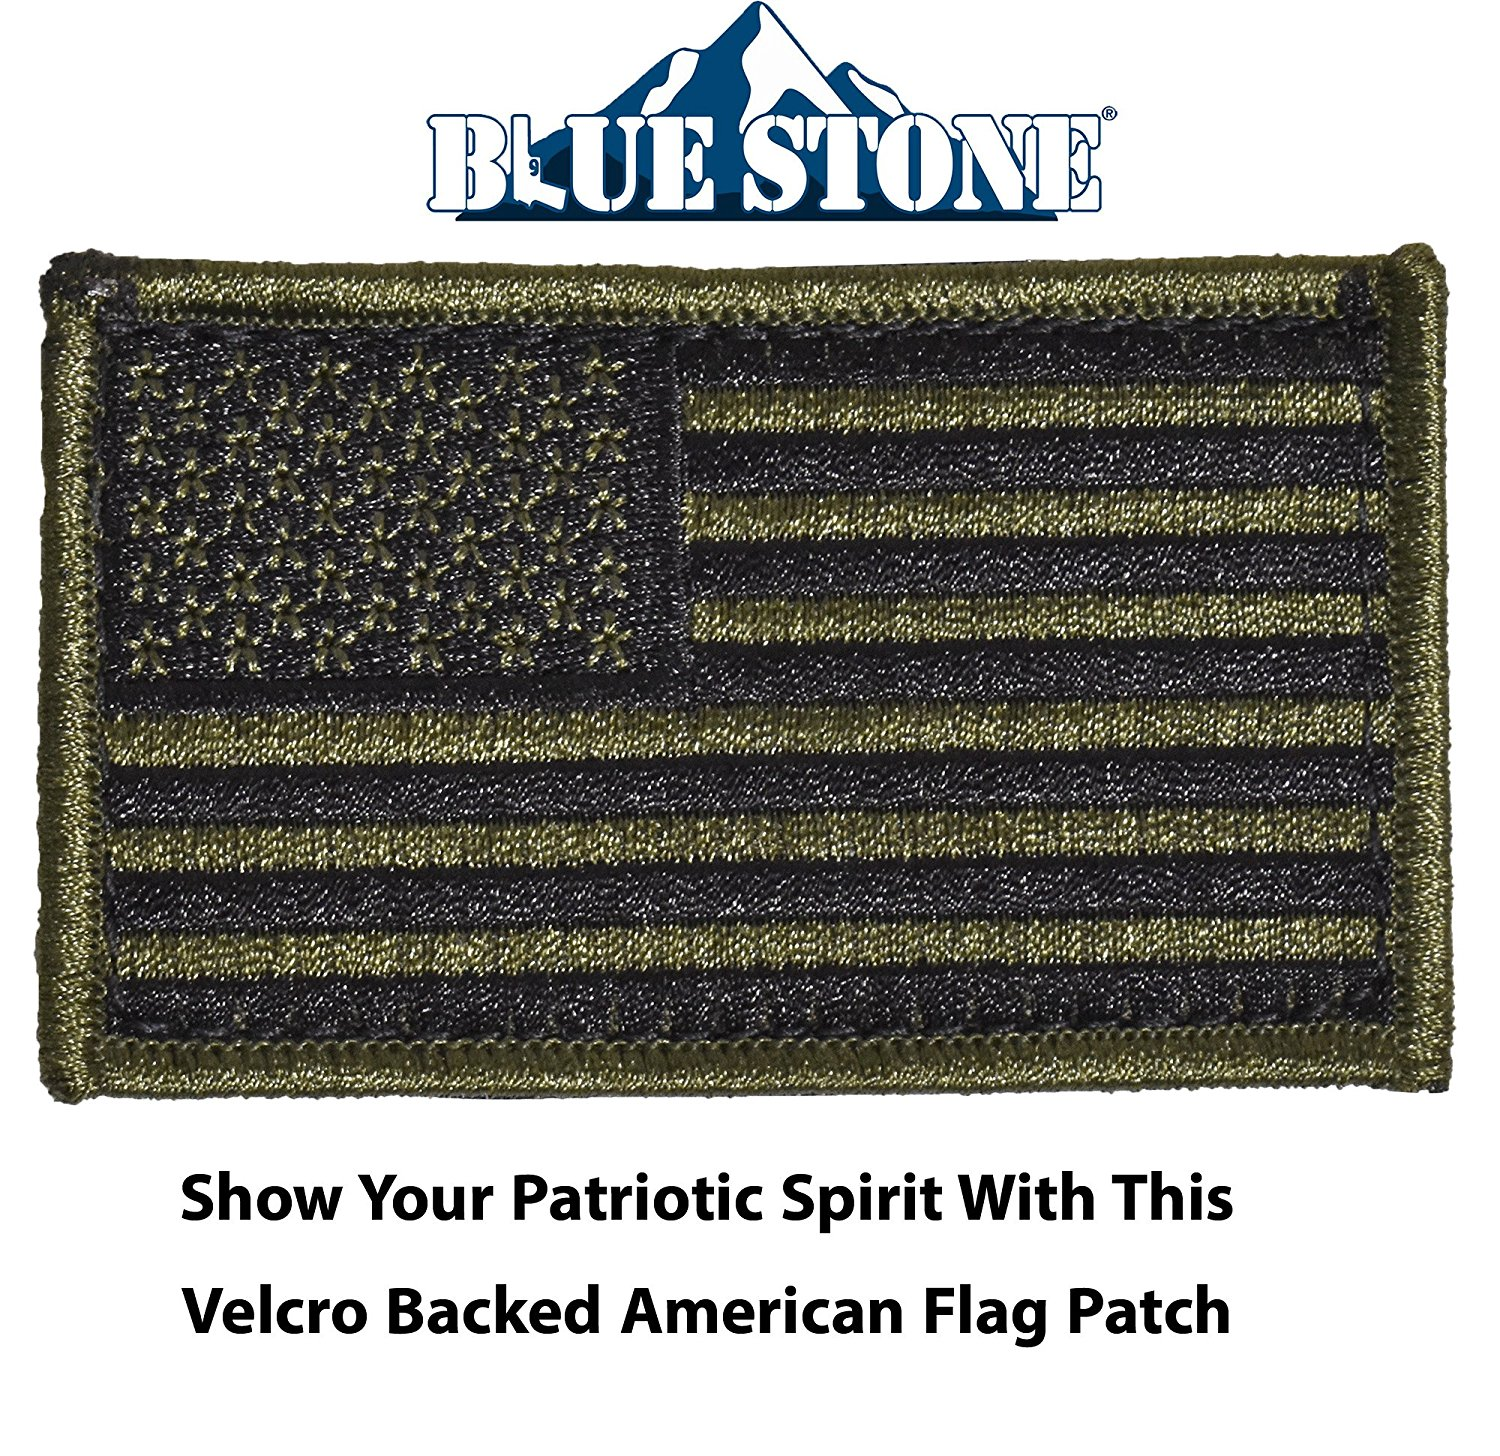 Velcro American Flag Patch| Embroidered American Flag Patch Velcro| Velcro Embroidered American Flag Patch| Velcro USA Flag Patch| American Flag Patch With Velcro